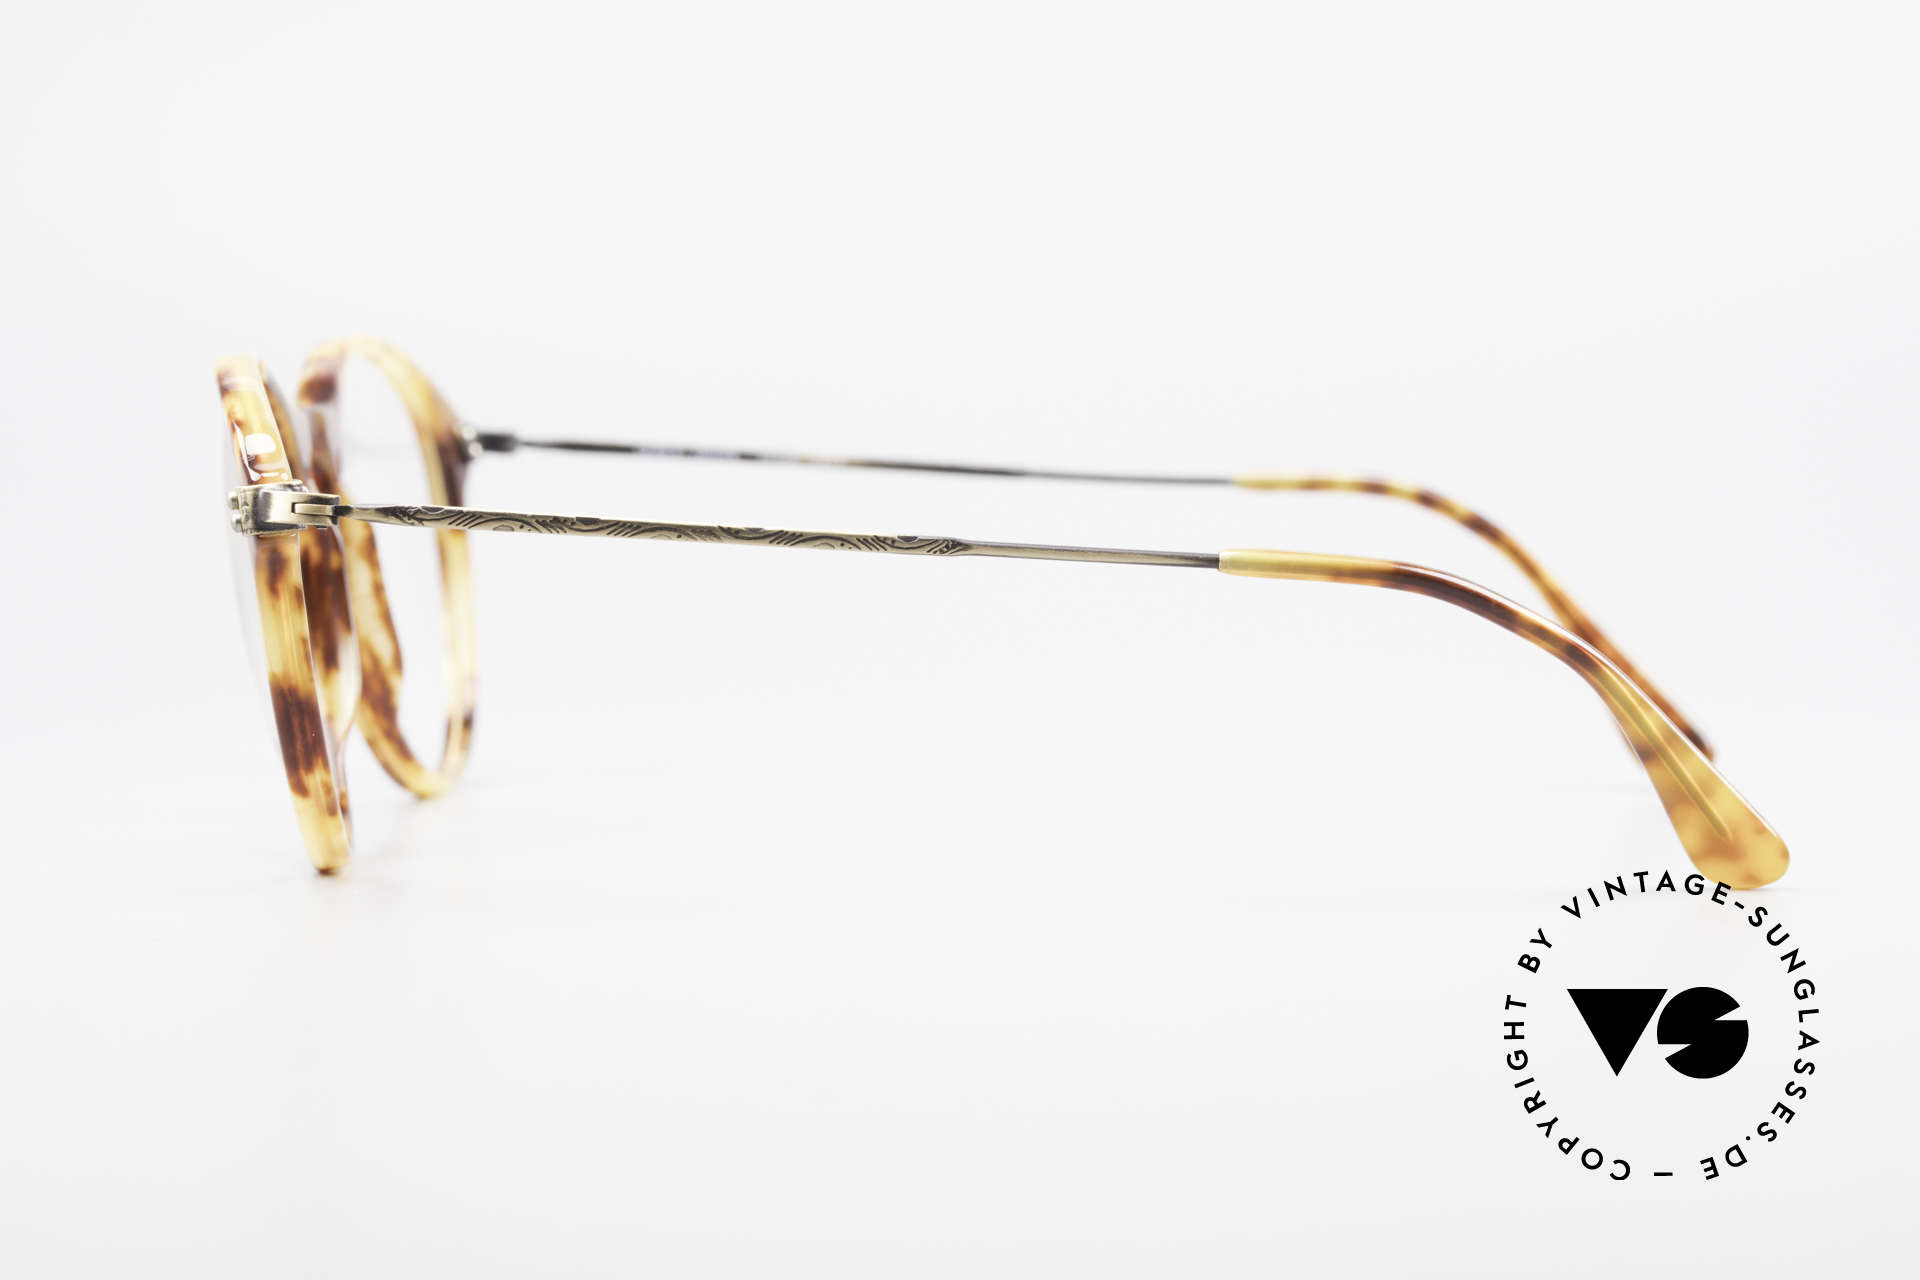 Giorgio Armani 329 Small 90's Panto Eyeglasses, NO retro specs, but a unique 25 years old ORIGINAL!, Made for Men